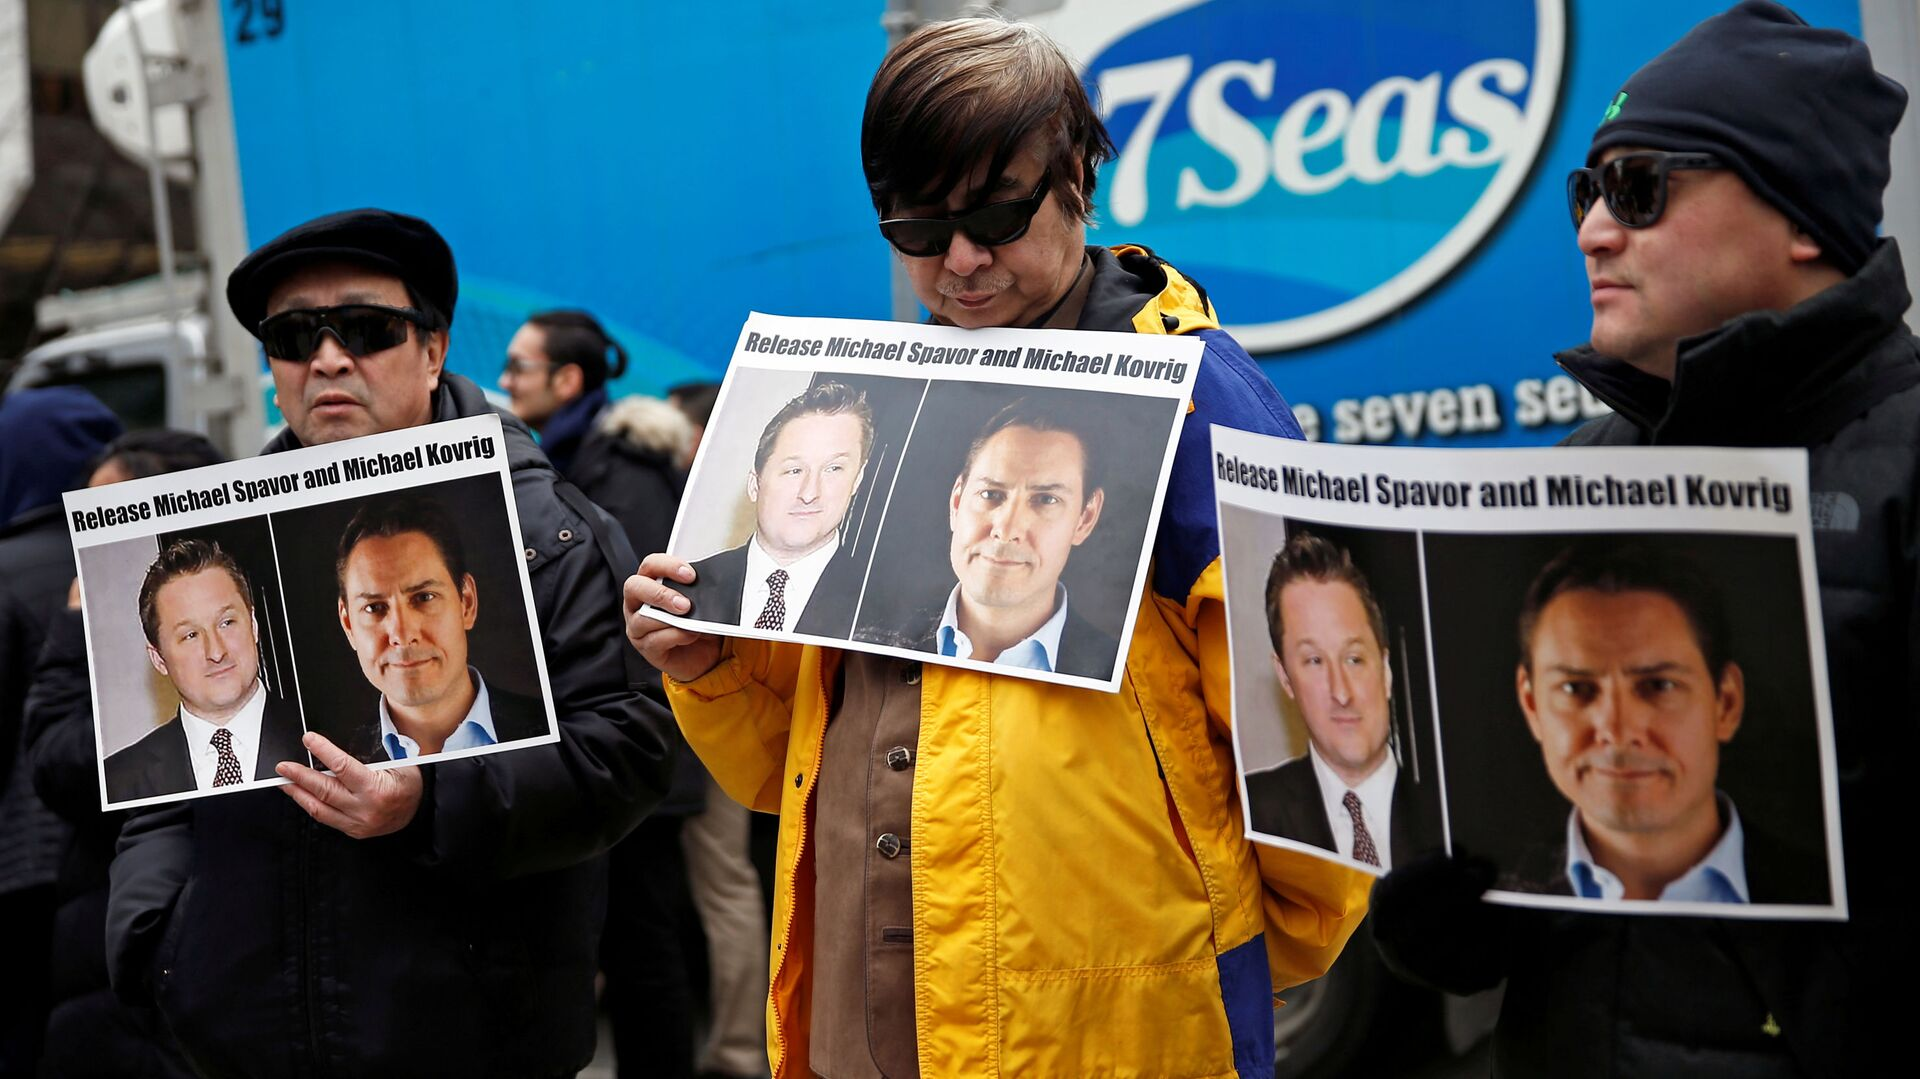 People hold placards calling for China to release Canadian detainees Michael Spavor and Michael Kovrig outside a court hearing for Huawei Technologies Chief Financial Officer Meng Wanzhou at the B.C. Supreme Court in Vancouver, British Columbia, Canada, March 6, 2019. - Sputnik International, 1920, 01.09.2021